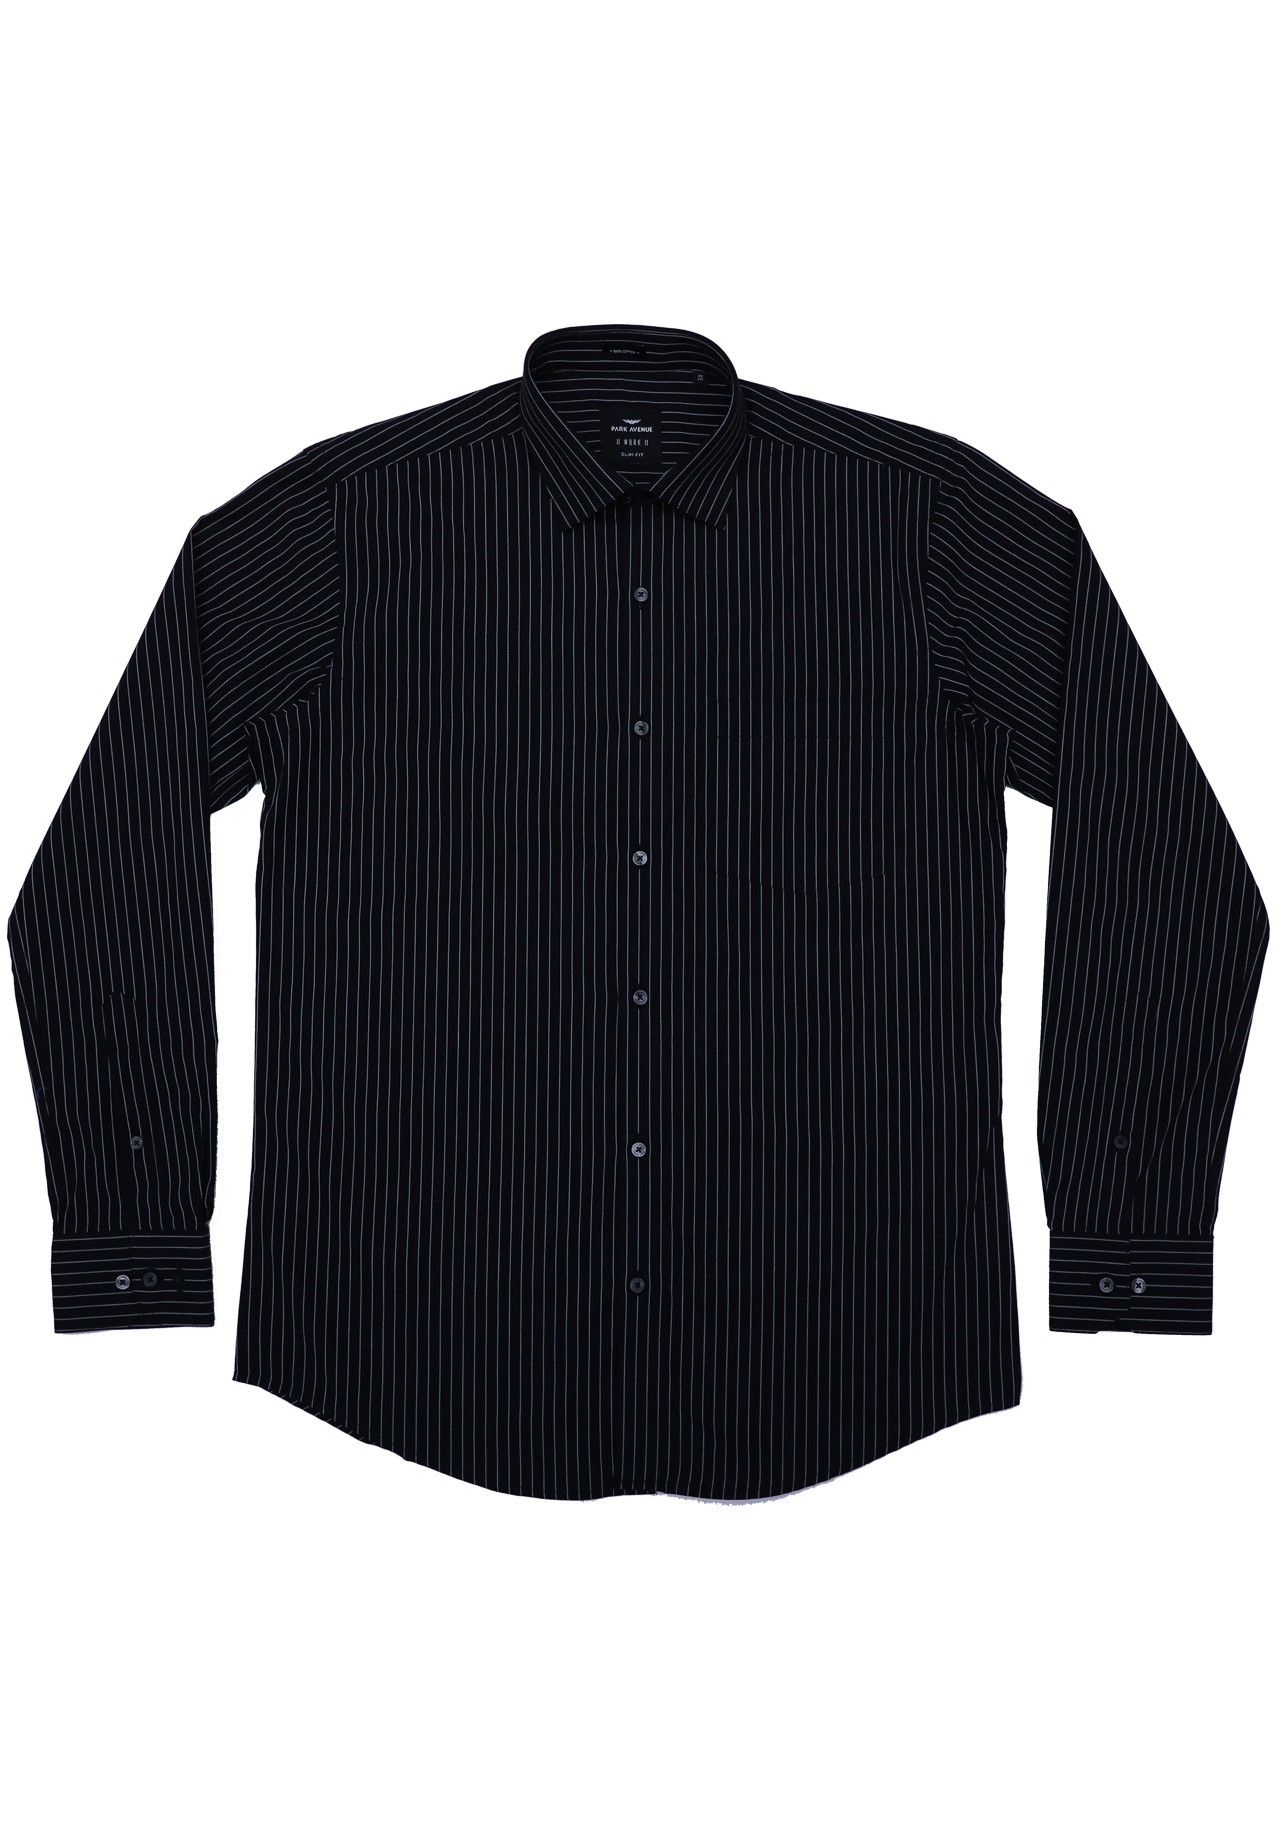 Park Avenue PMSX12282-K8 Mens Shirt